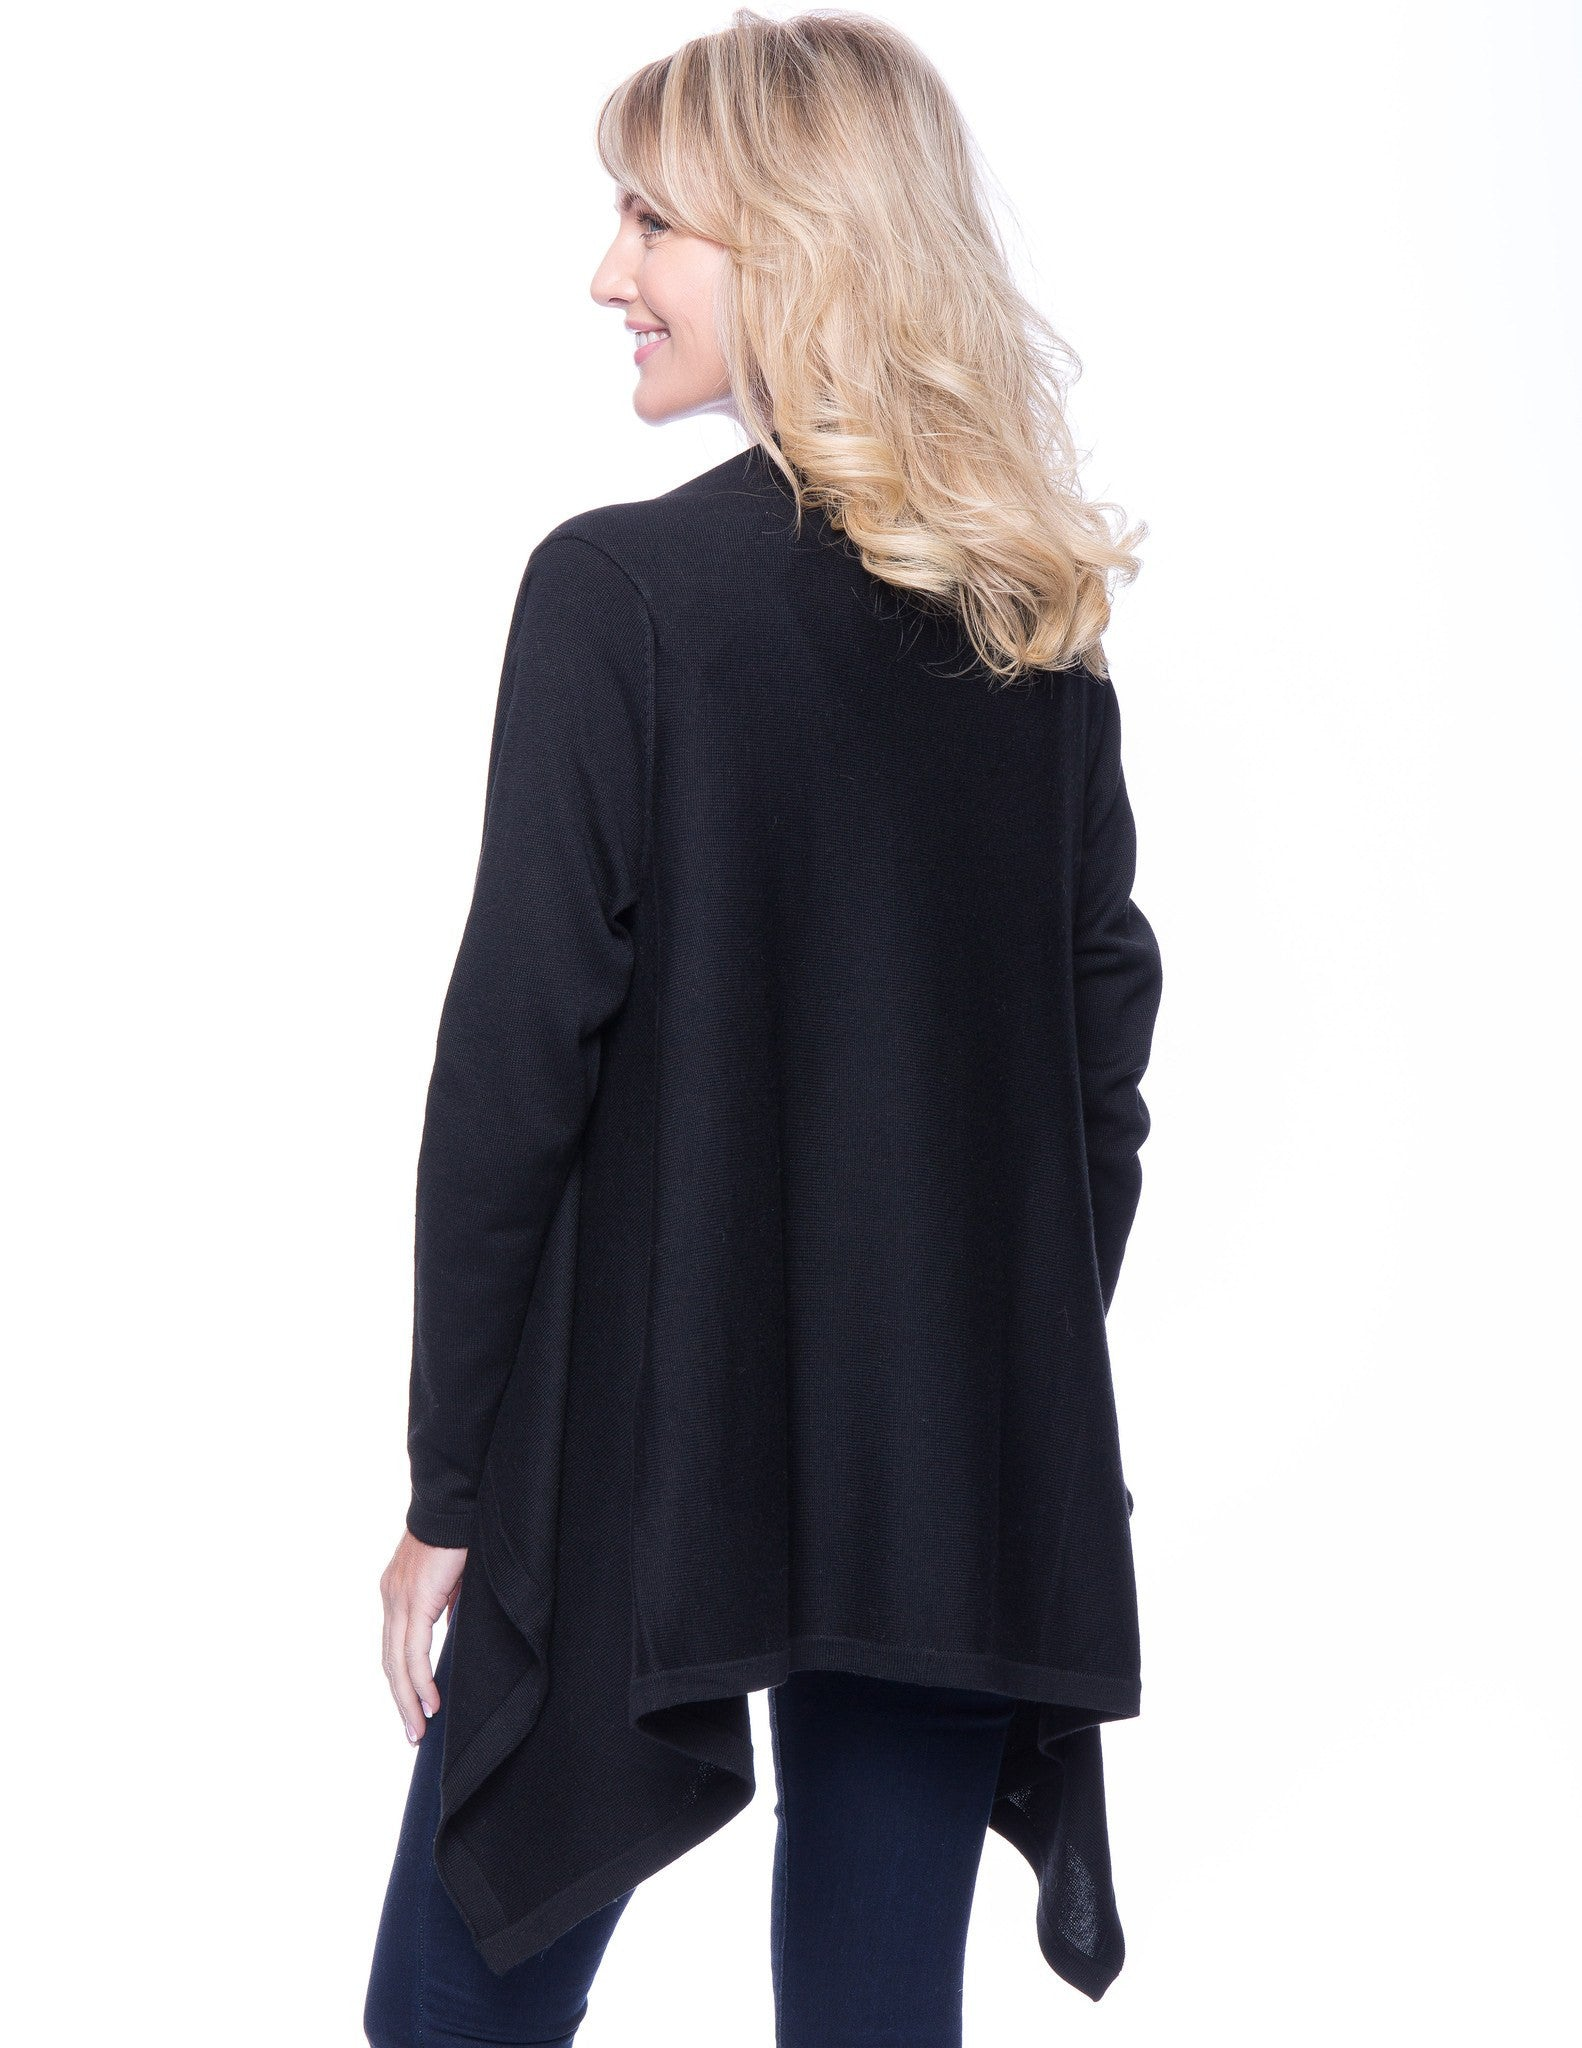 Tocco Reale Women's Wool Blend Open Cardigan - Black